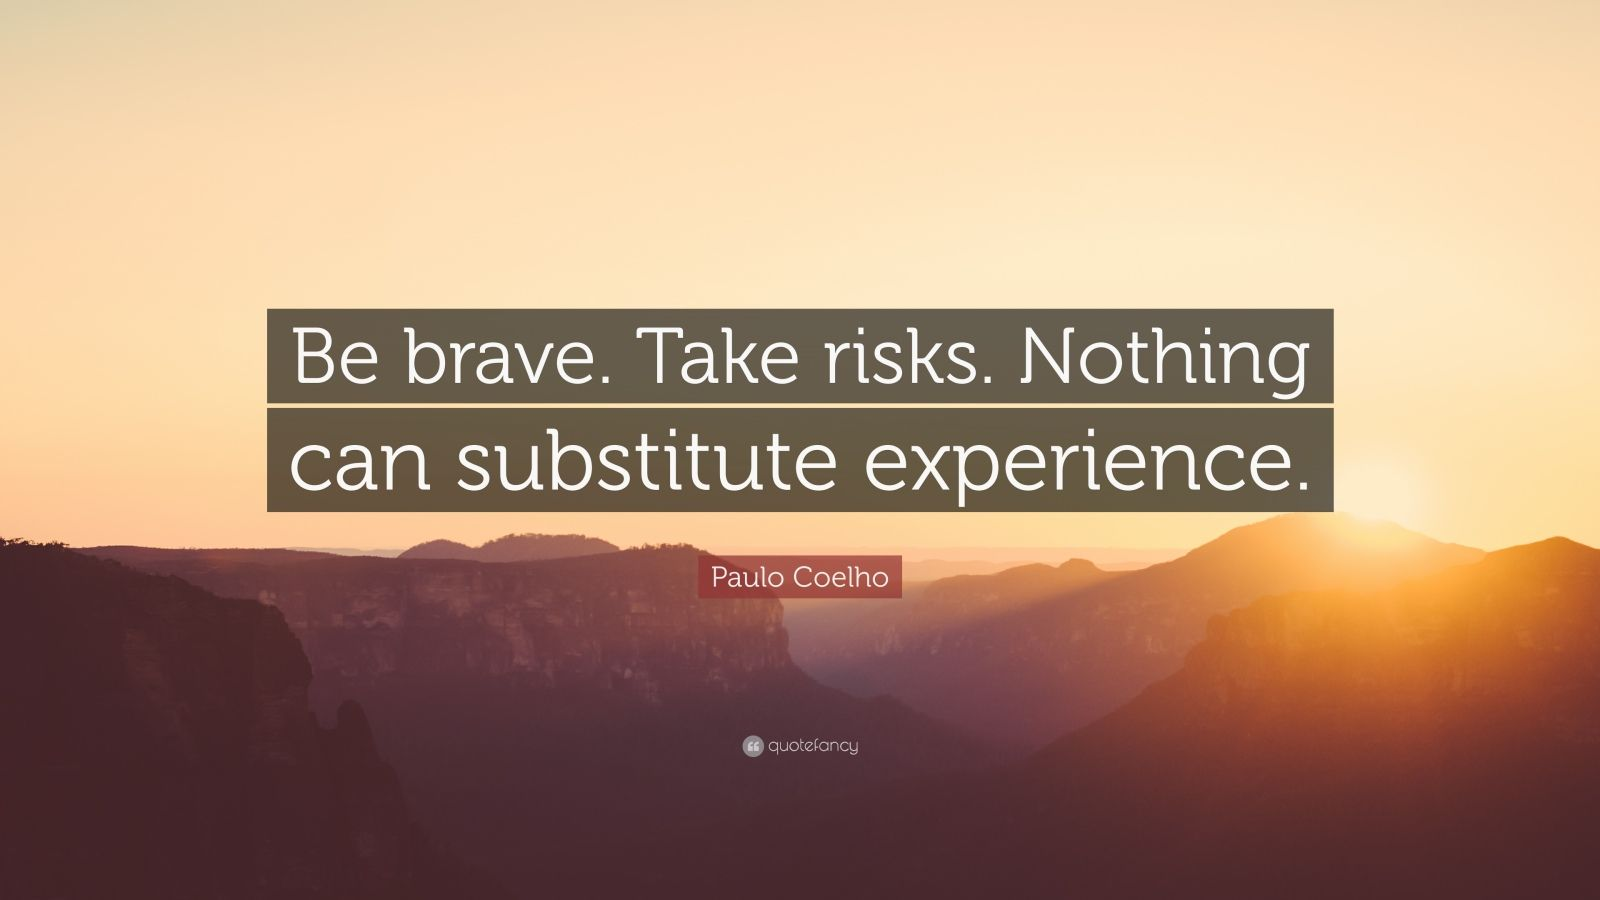 Change Quote Wallpaper Paulo Coelho Quote Be Brave Take Risks Nothing Can